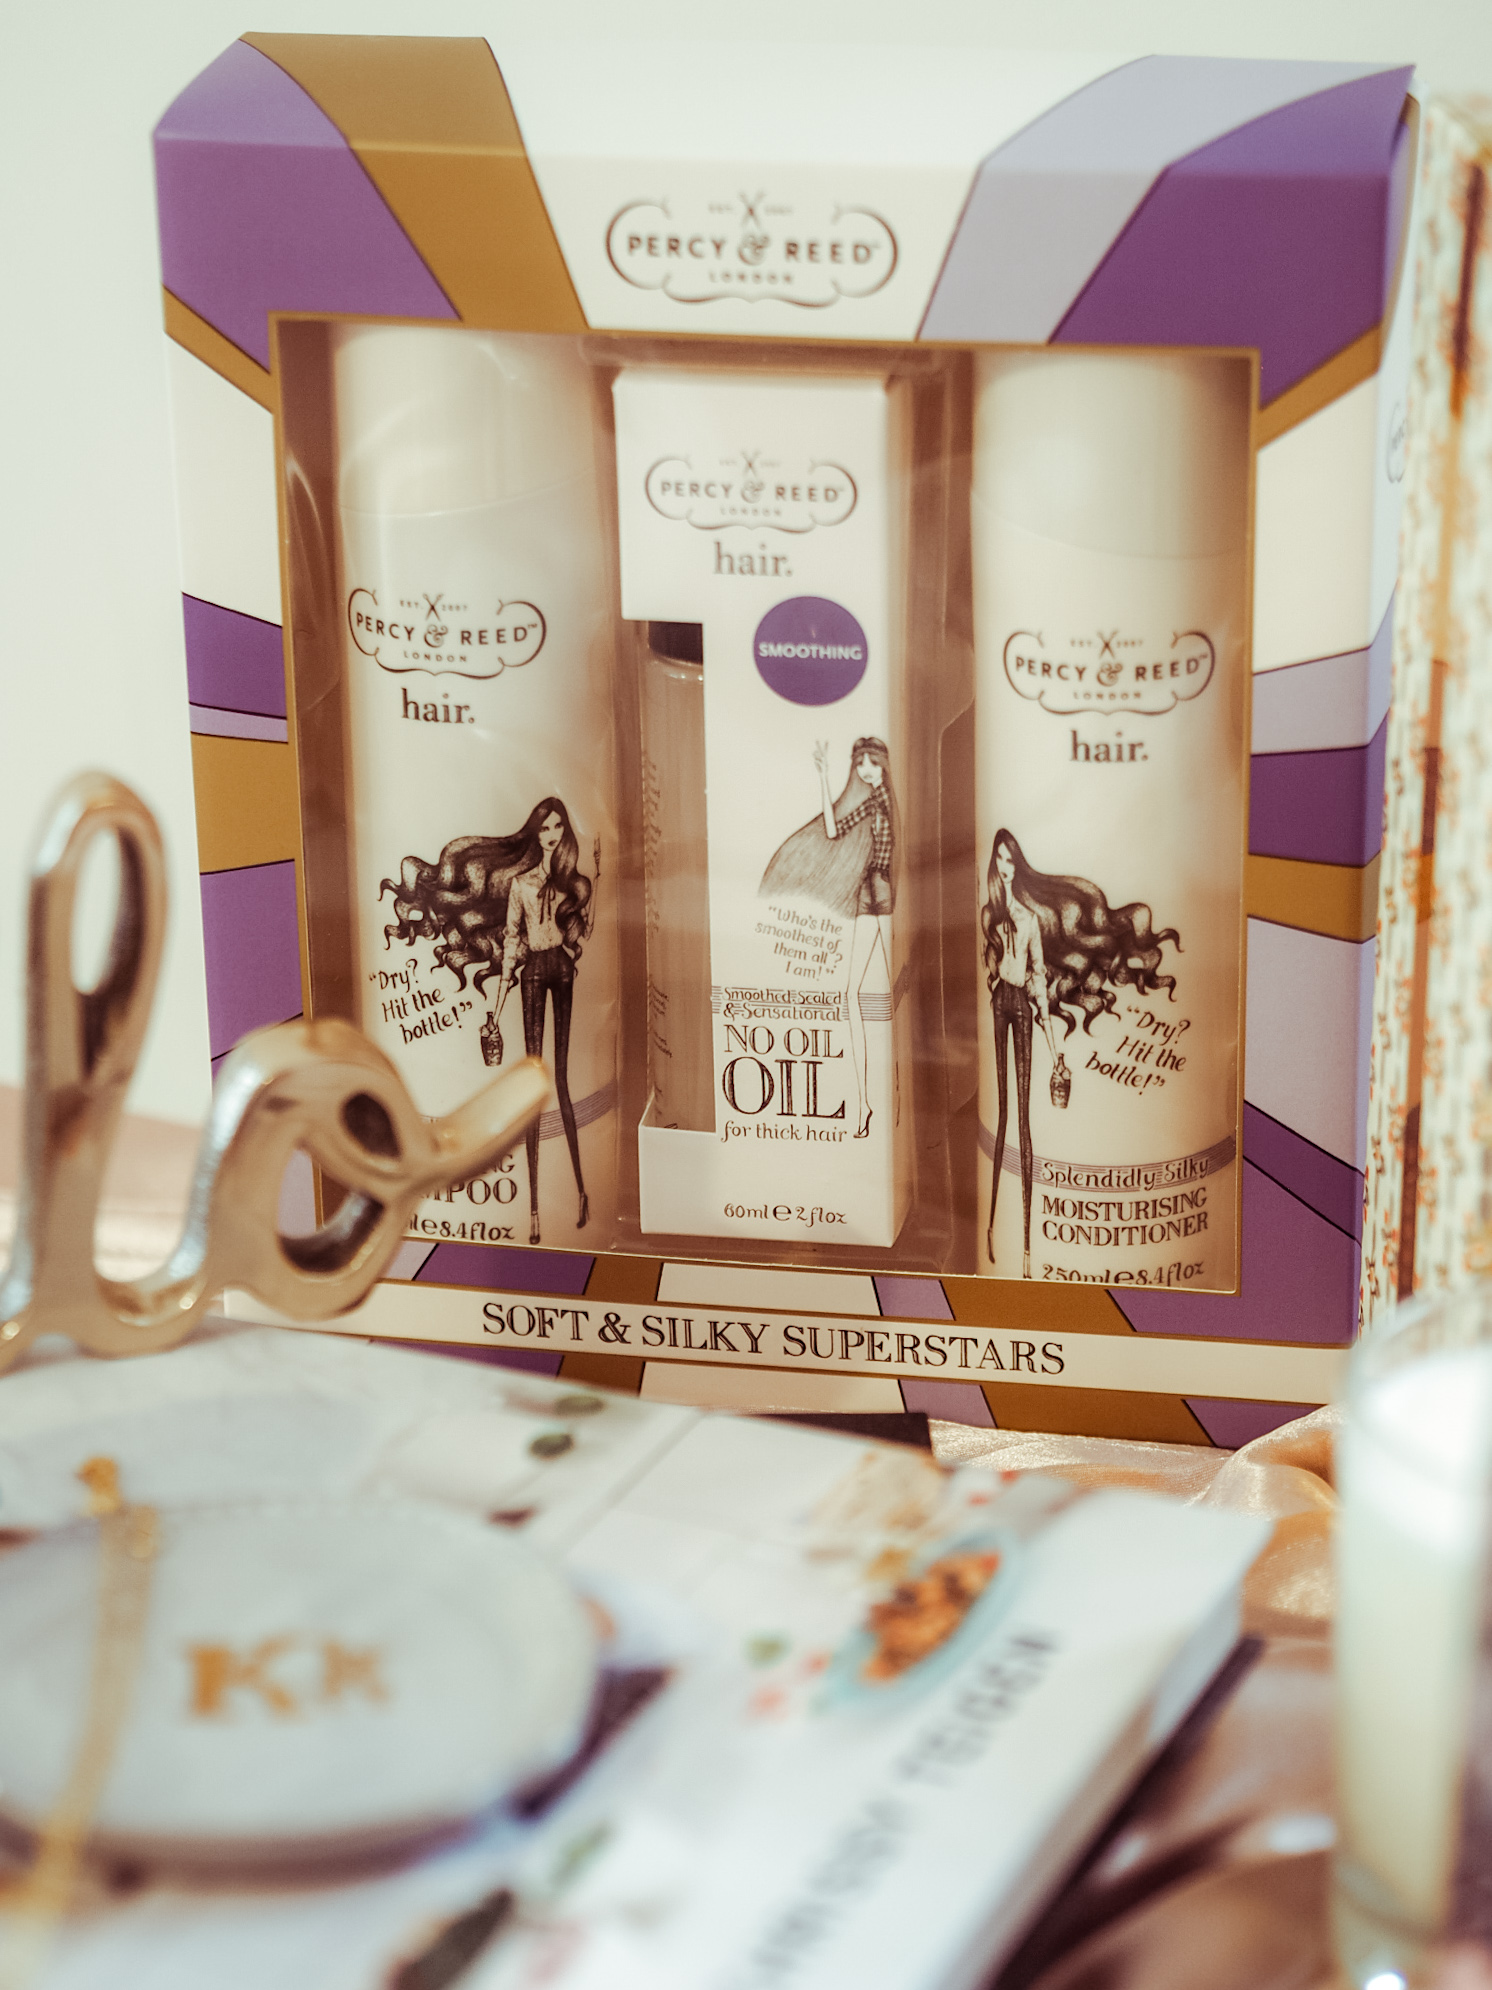 Percy & Reed soft and silky superstars - LemonaidLies gift guide